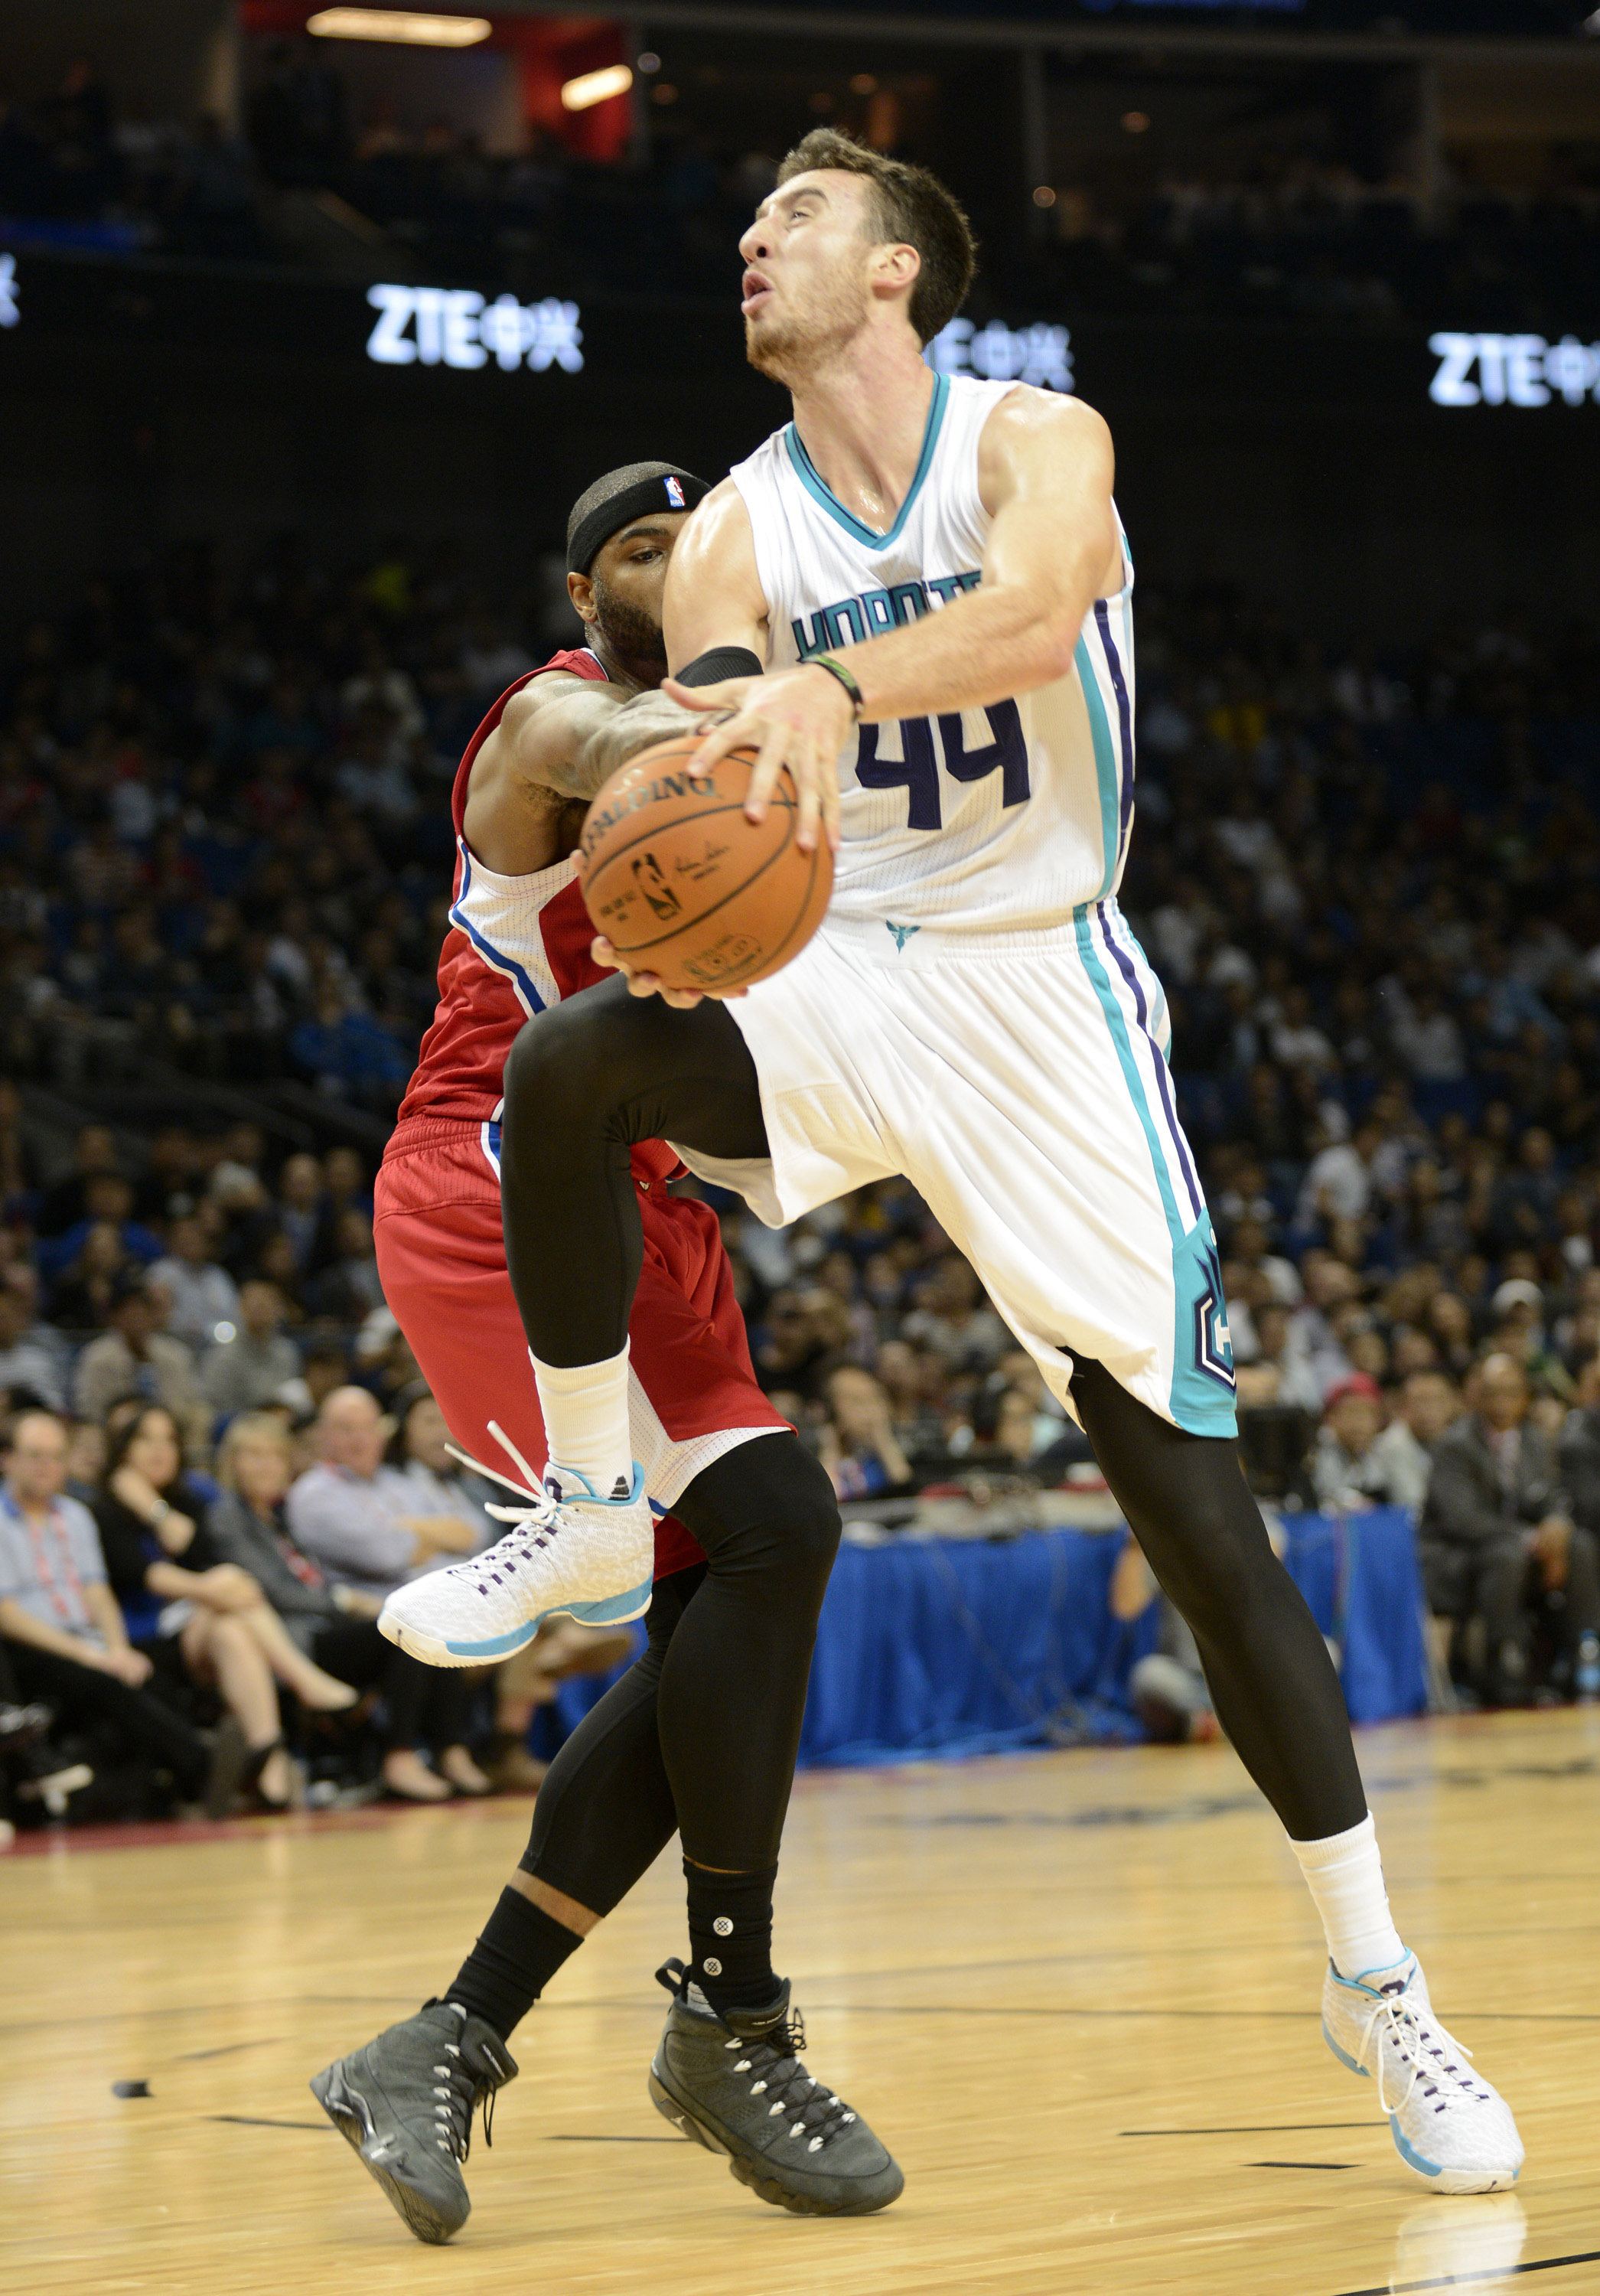 Amazingly, this is the funniest picture of Kaminsky in a Hornets uni that I could find.